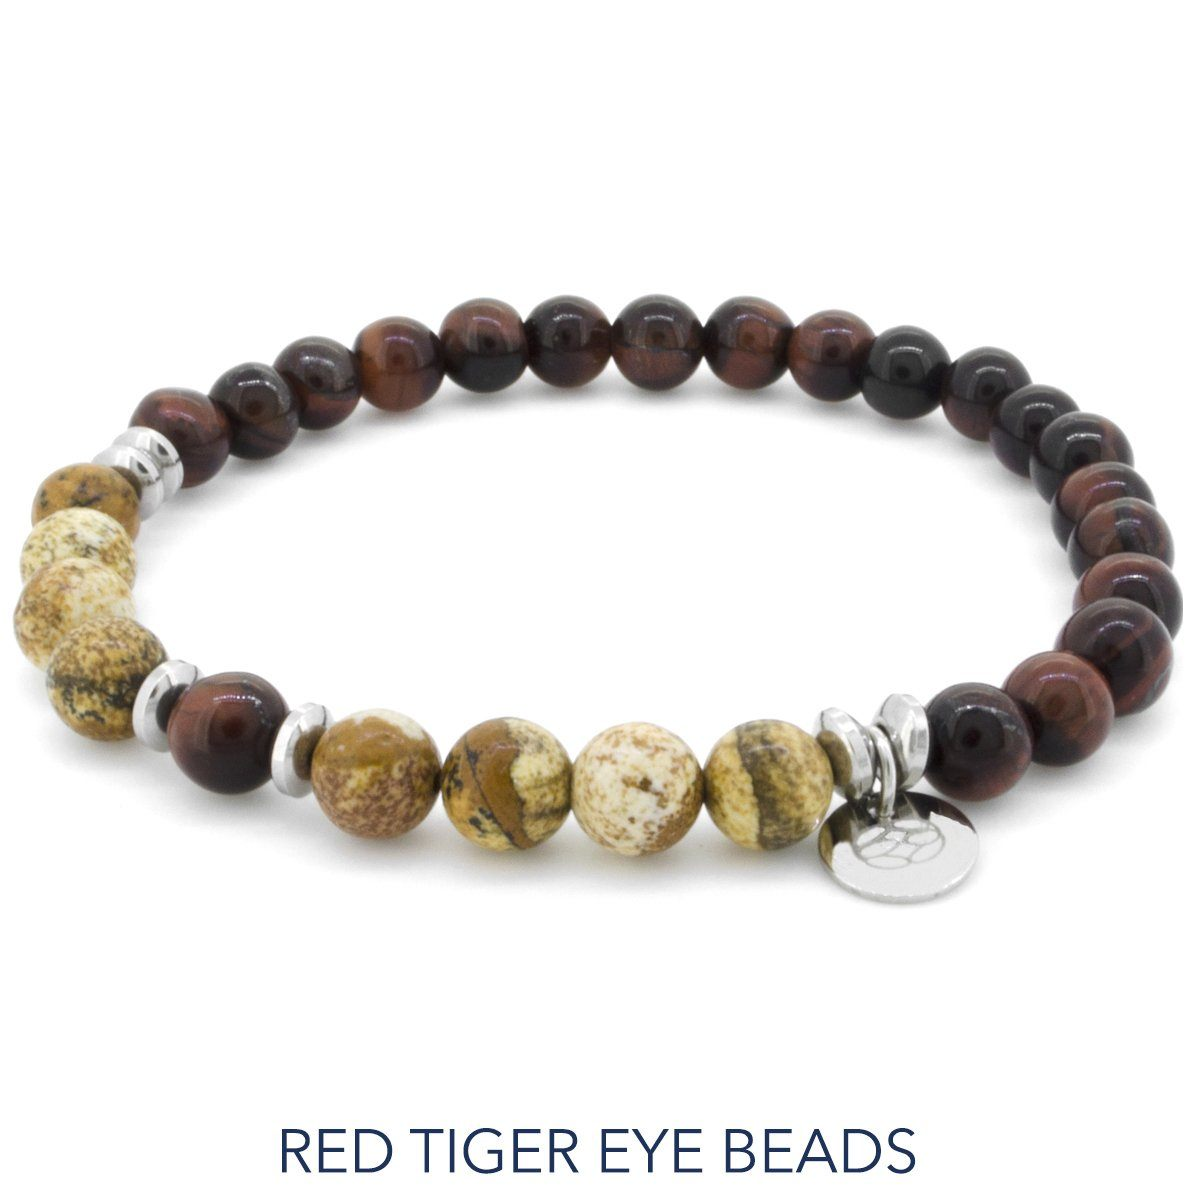 Bracelet - Budoni 6 Mm Red Tiger Eye Sand